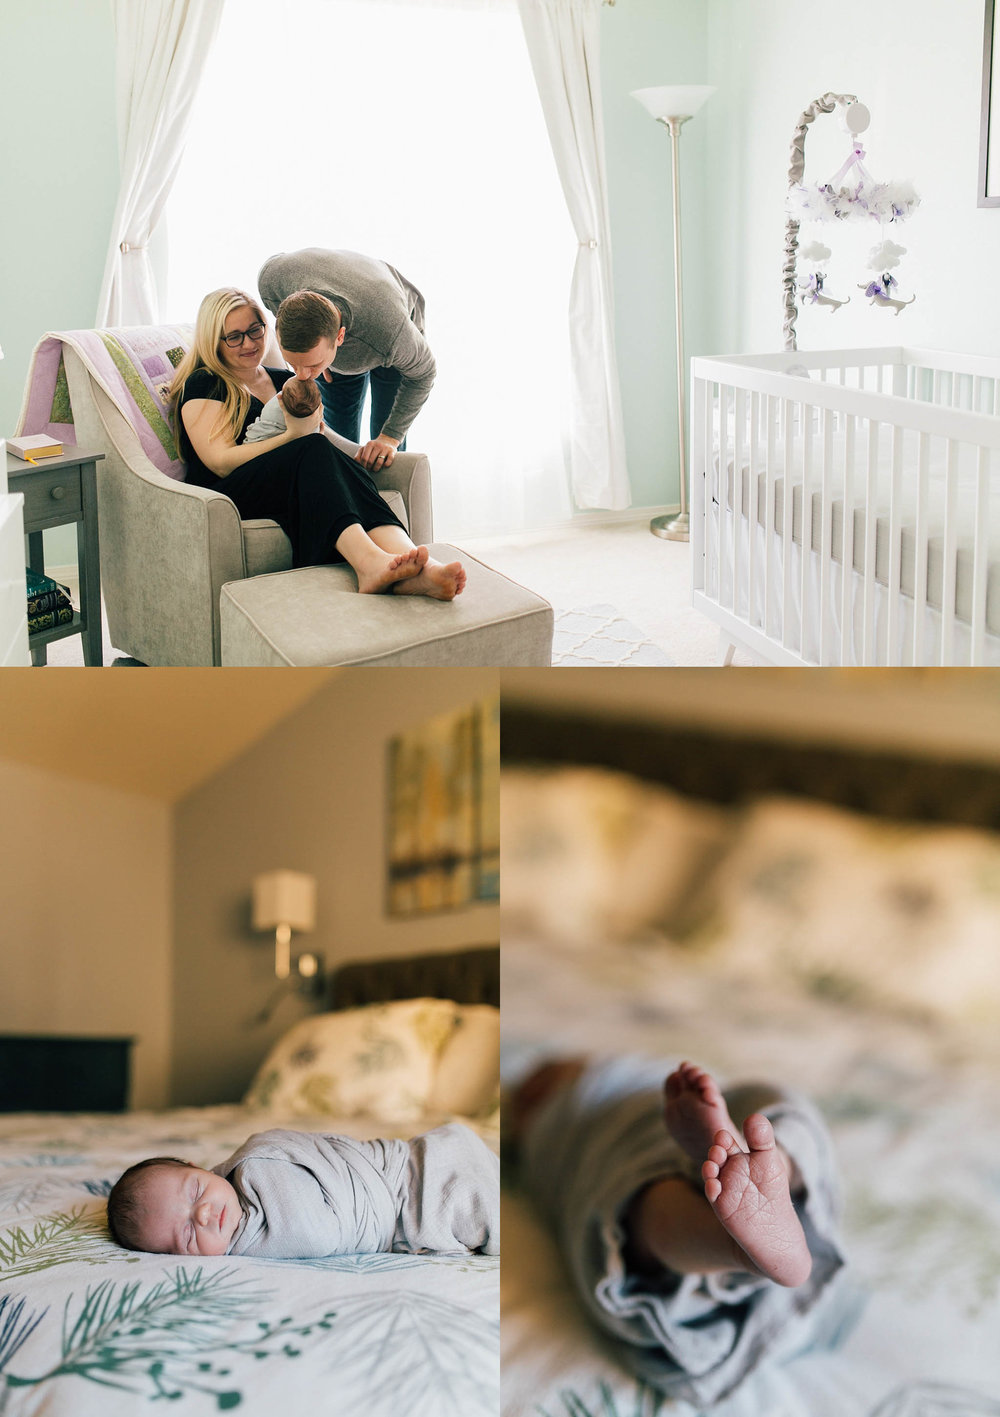 ashley vos seattle in home newborn session photography photographer pnw lifestyle-10.jpg